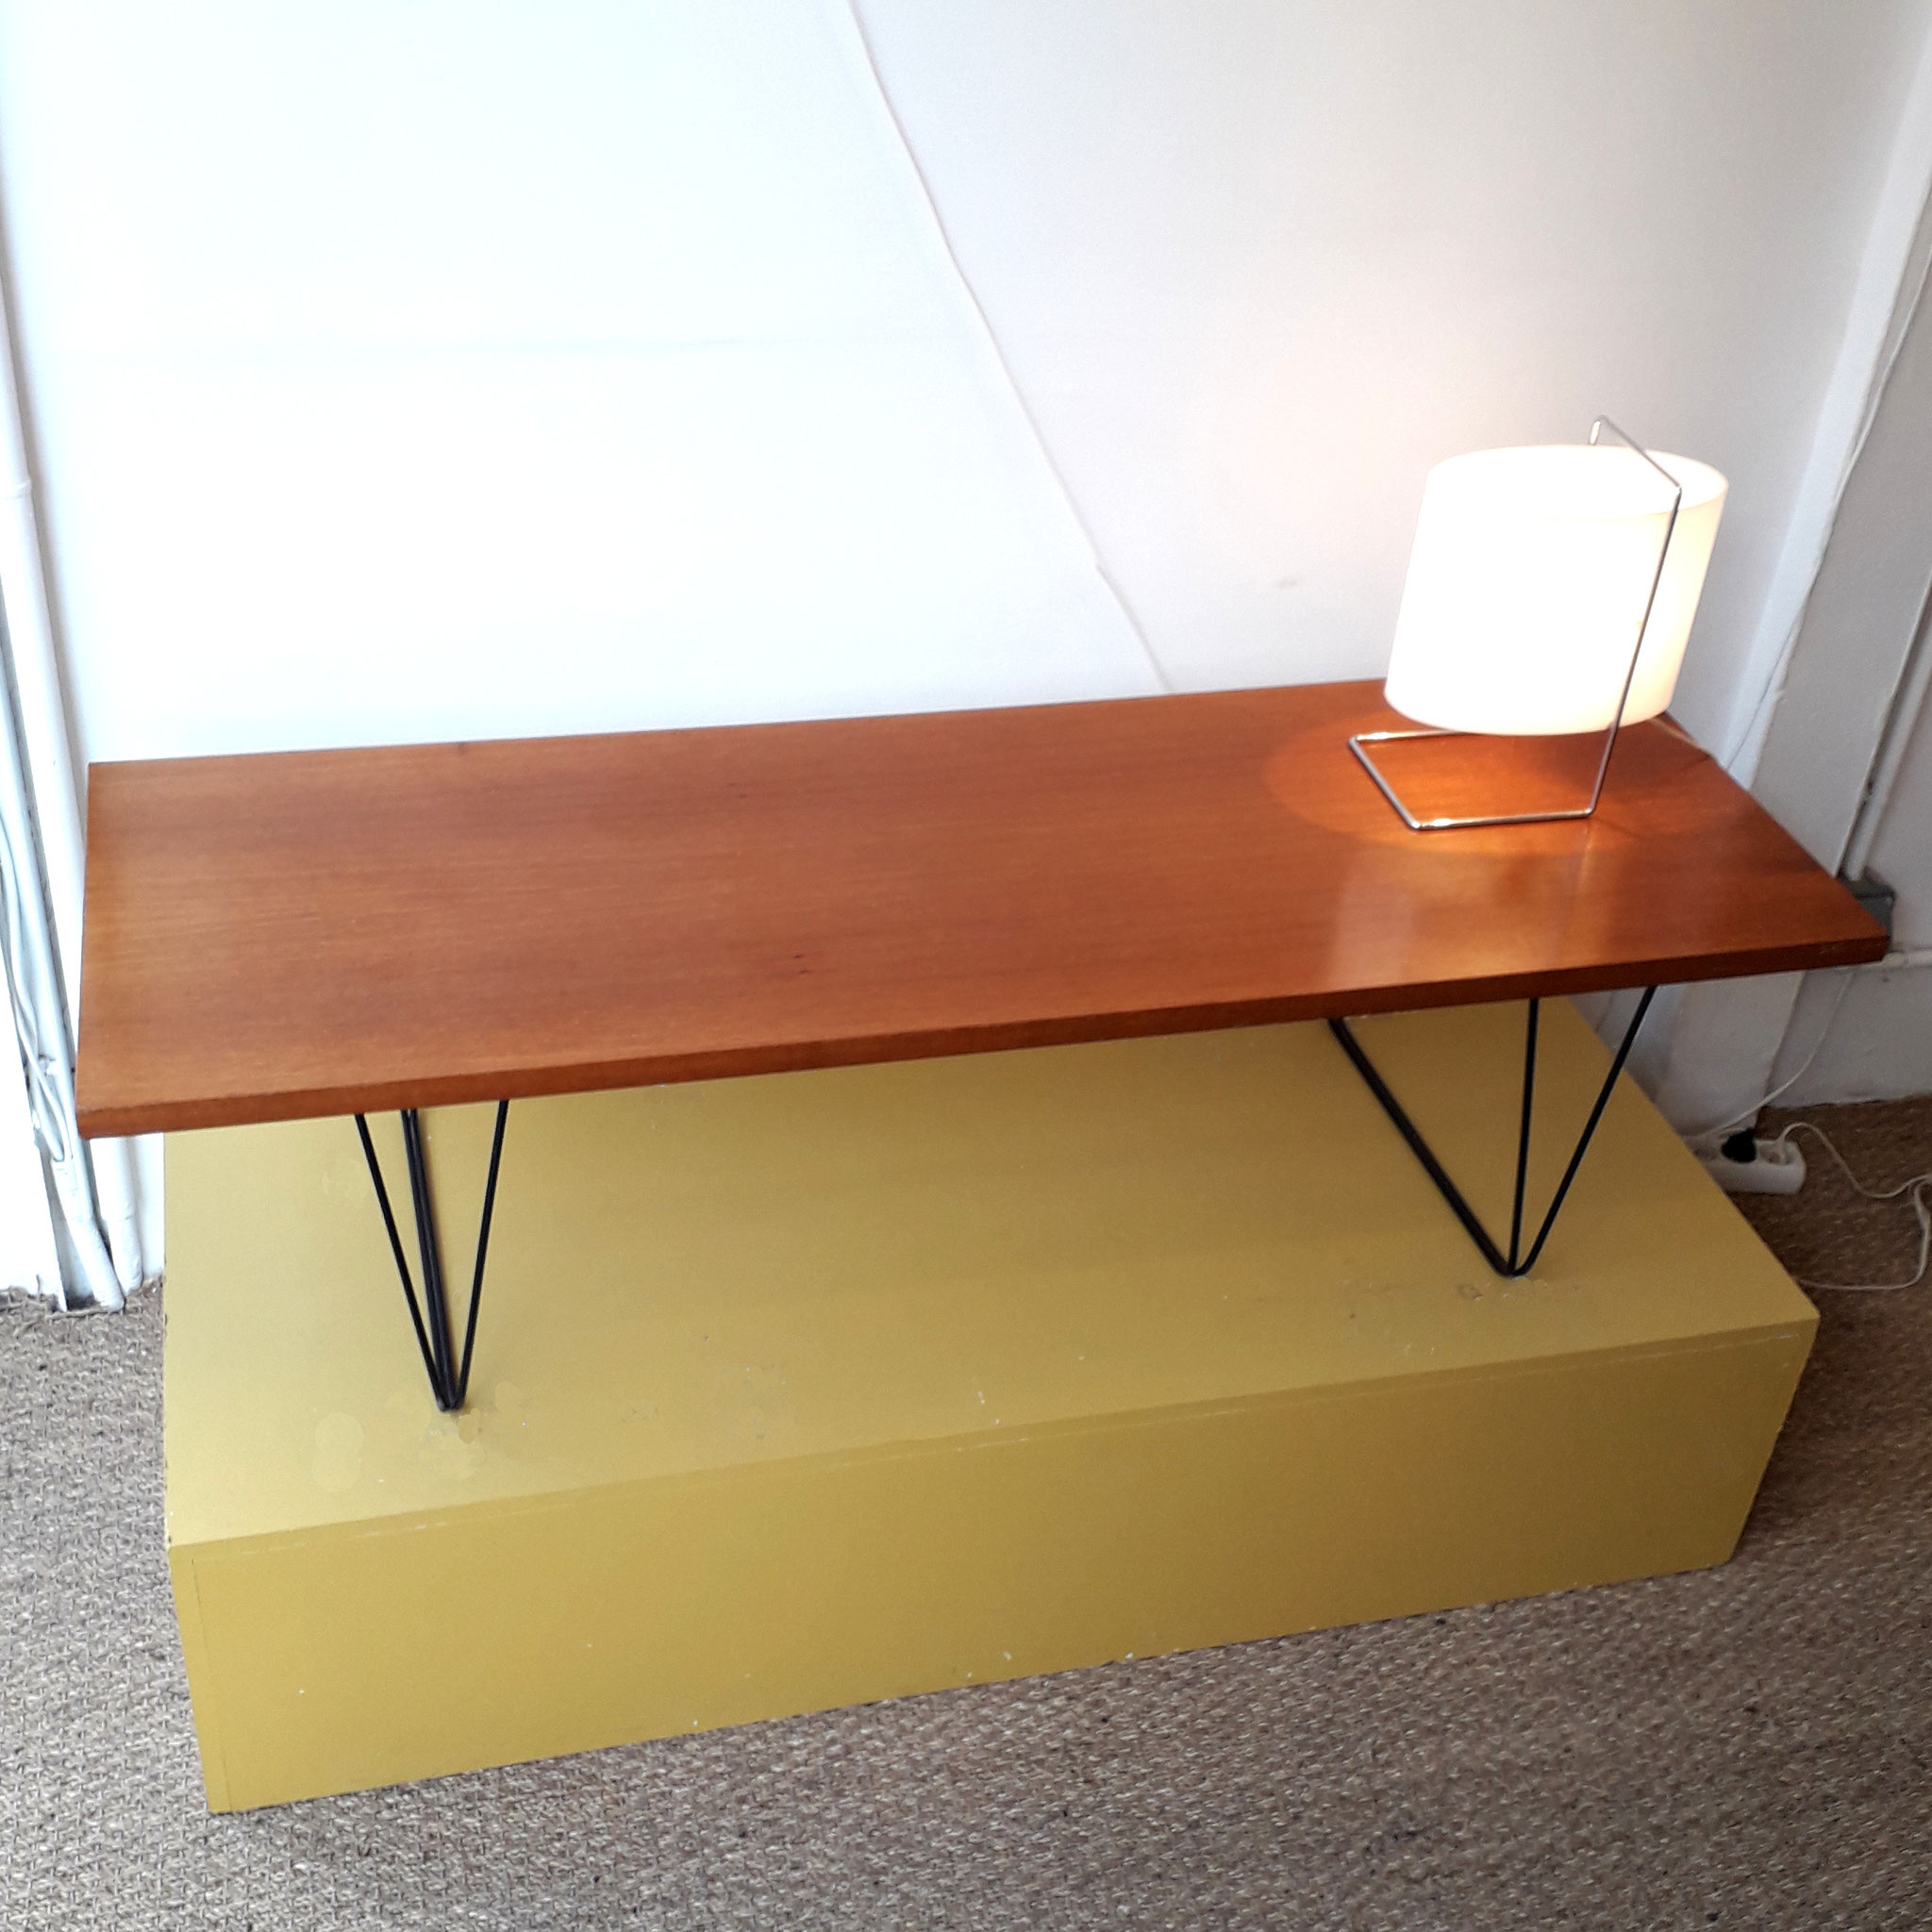 Table basse CM 191, édition Thonet, 1959